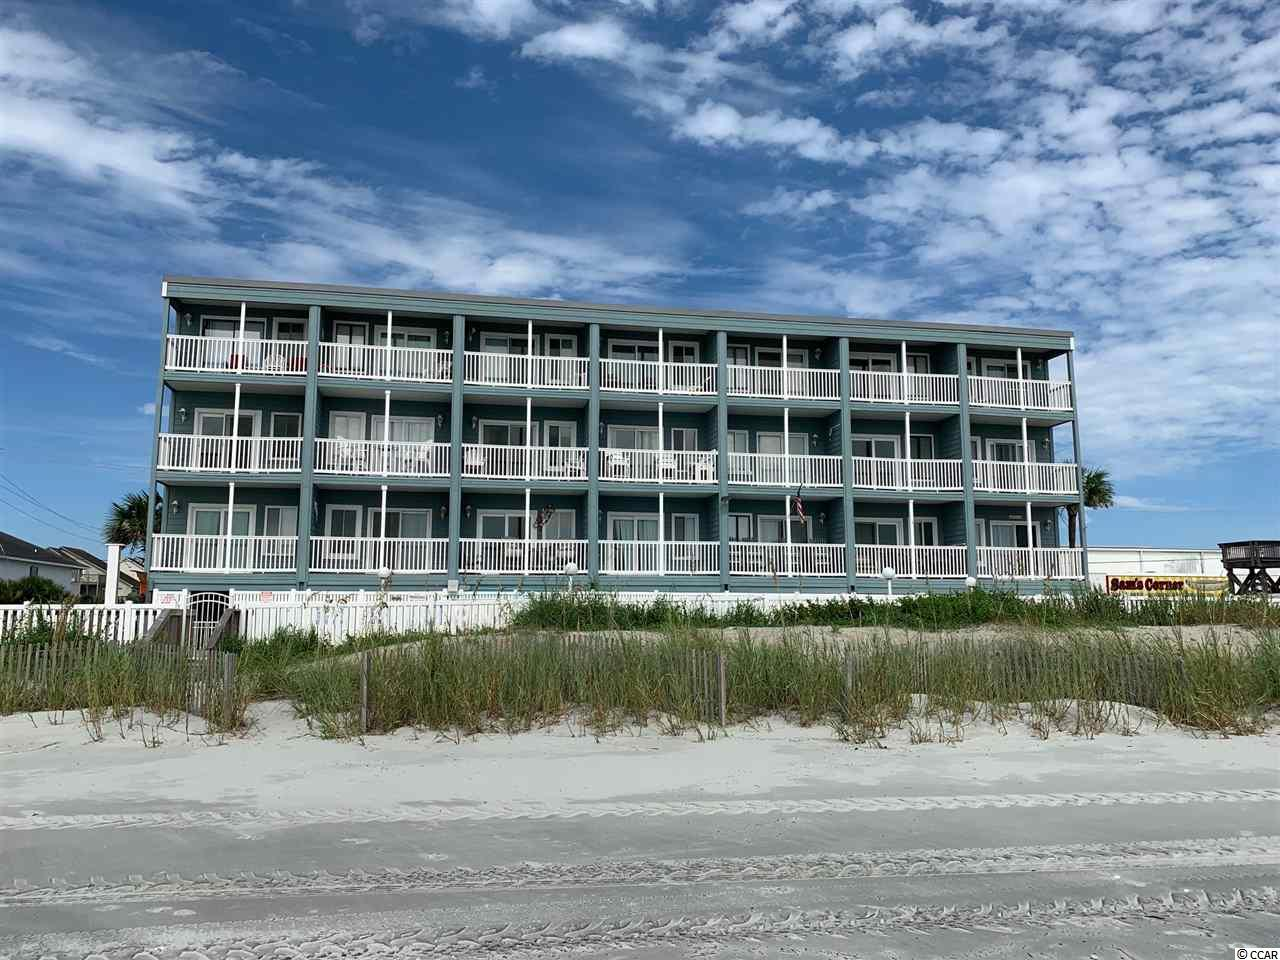 This wonderful OCEAN FRONT property offers an elegant living and a relaxing balcony for you to enjoy the fantastic ocean views and the beach. Have your tea or coffee in the morning watching the sunrise and the dolphins going by or just go out and lay down in the sun on the gorgeous South Carolina sandy beach. This beautiful condo offers a spacious living room and has a new HVAC system, new granite counter tops, and can accommodate several people for a very nice and enjoyable vacation. The condo is steps to attractions, sandy beach, pool, fishing, shopping and restaurants so you don't need to worry about driving if you don't want to. It's all about the beach and the views! This will not last so don't miss it!